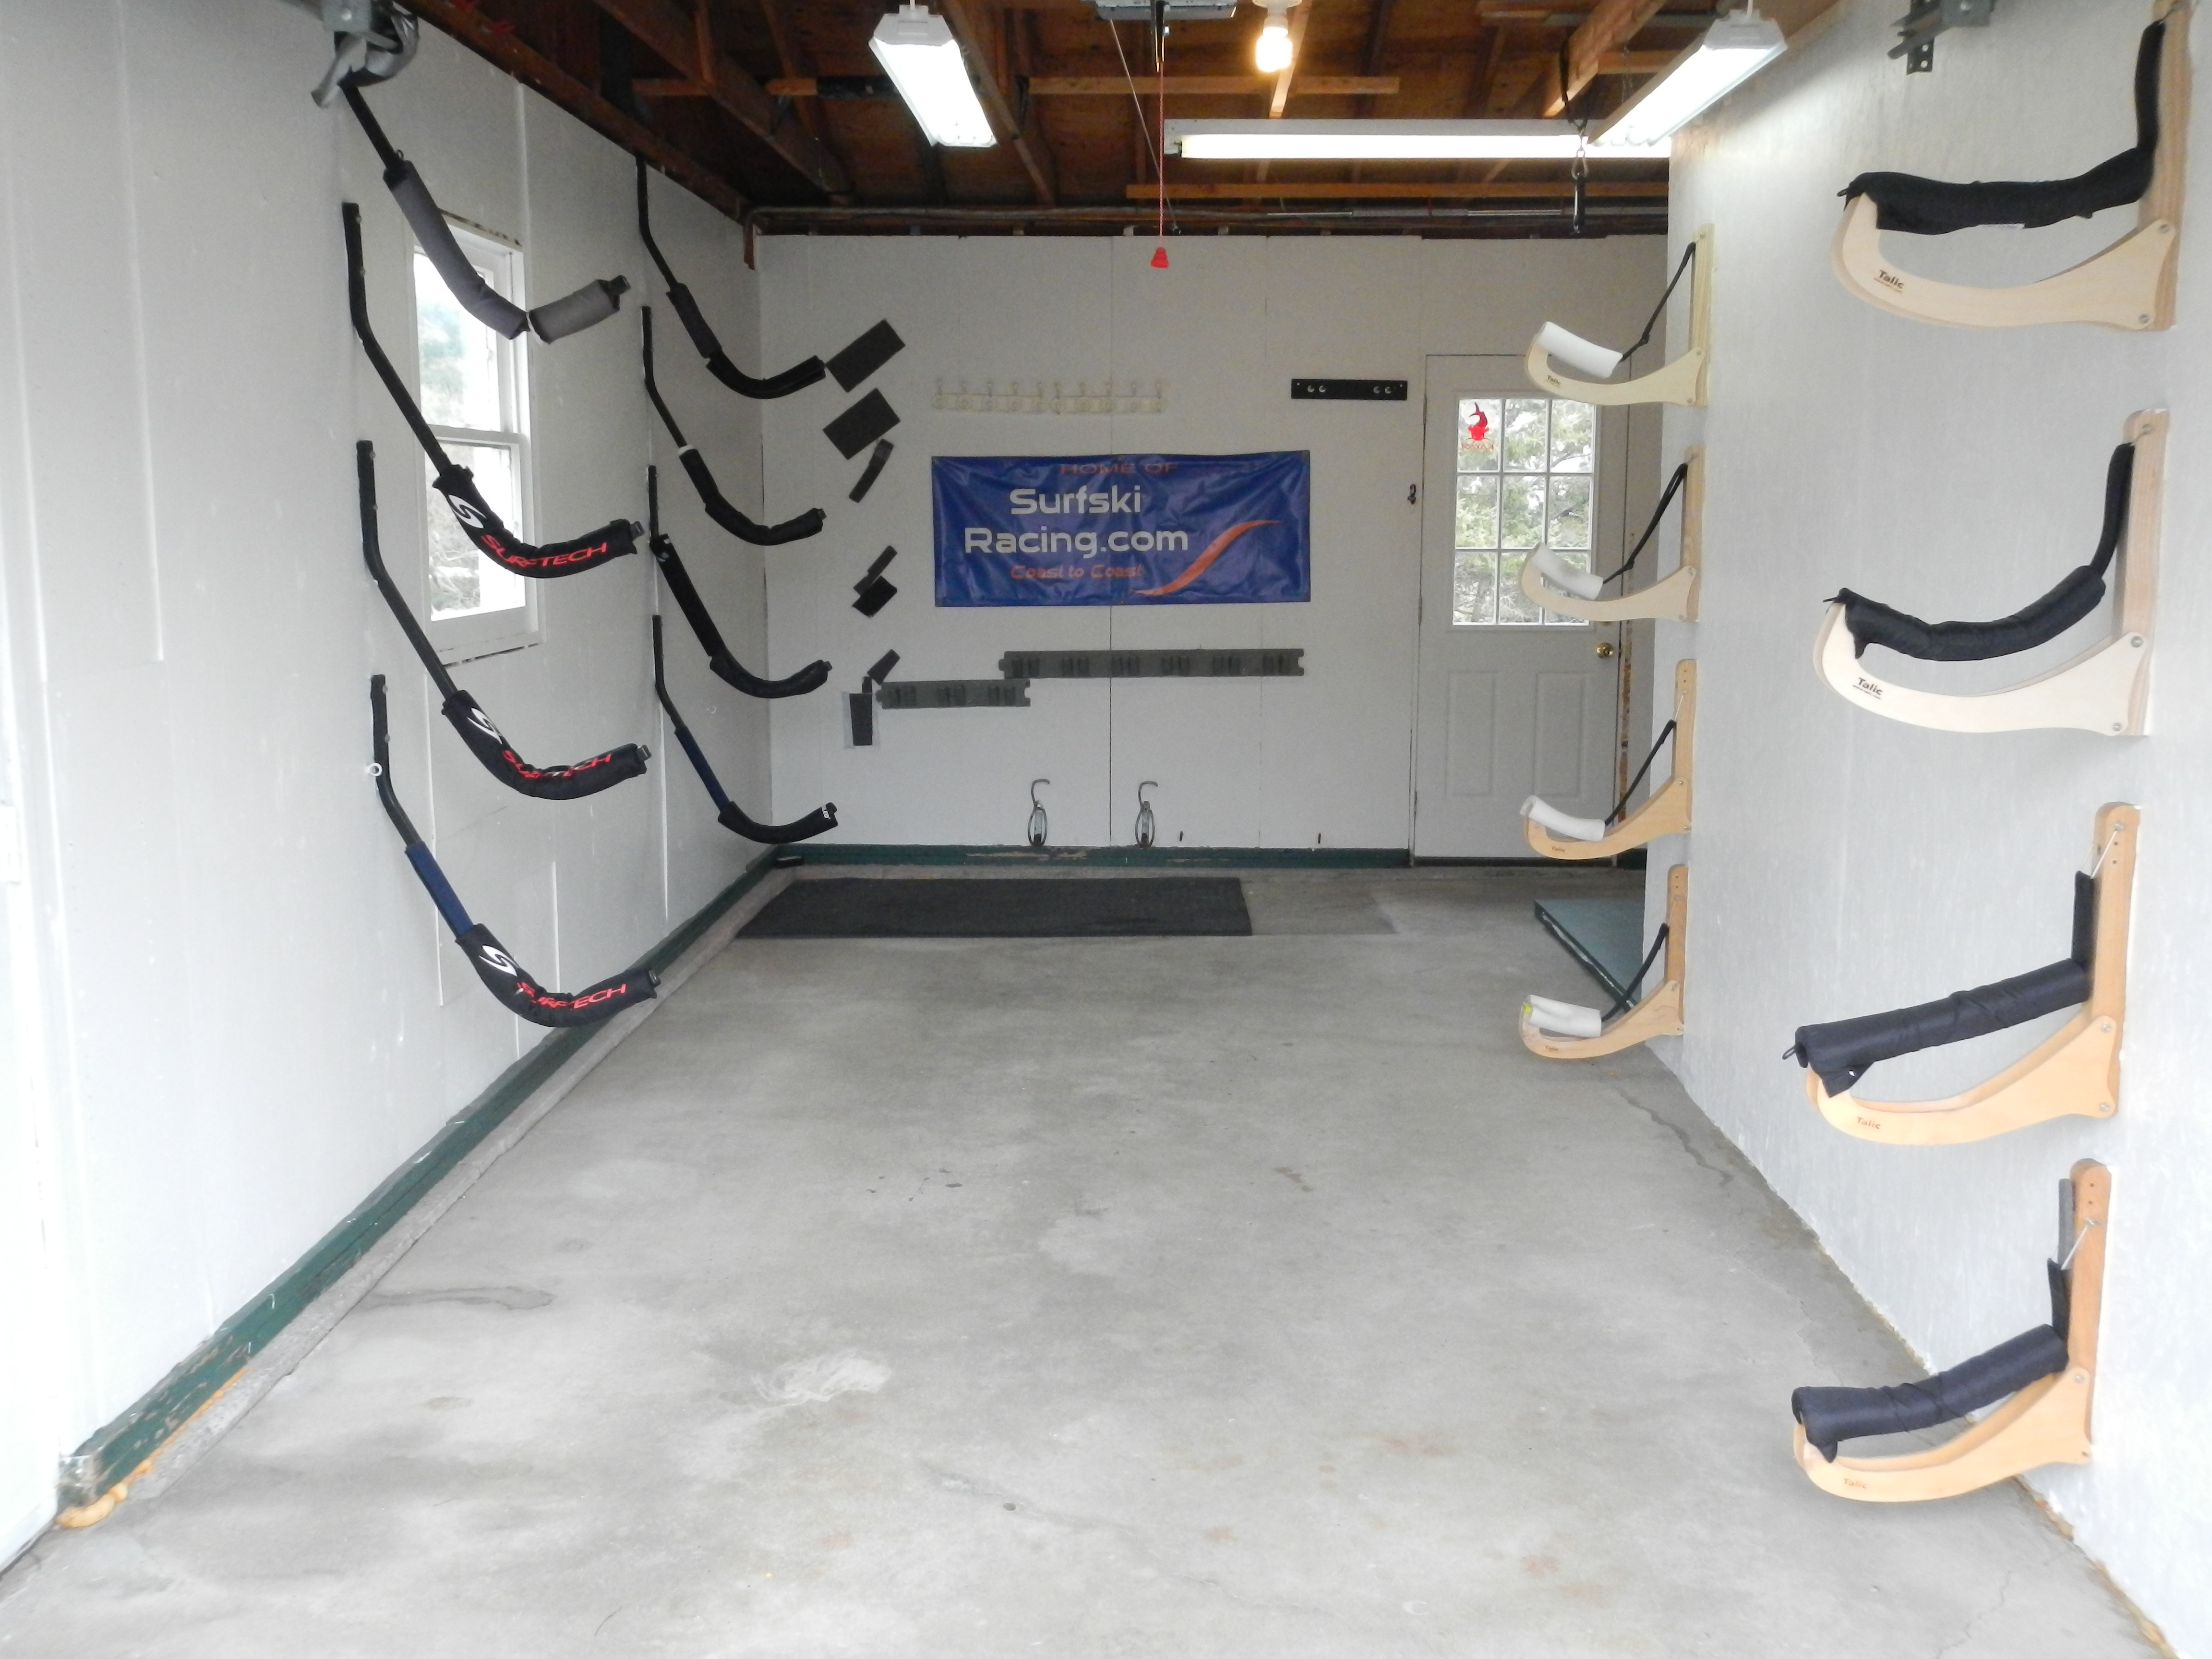 Design Garage Paint showroom garage gets new paint job surfskiracing com fresh with talic cradles on the right